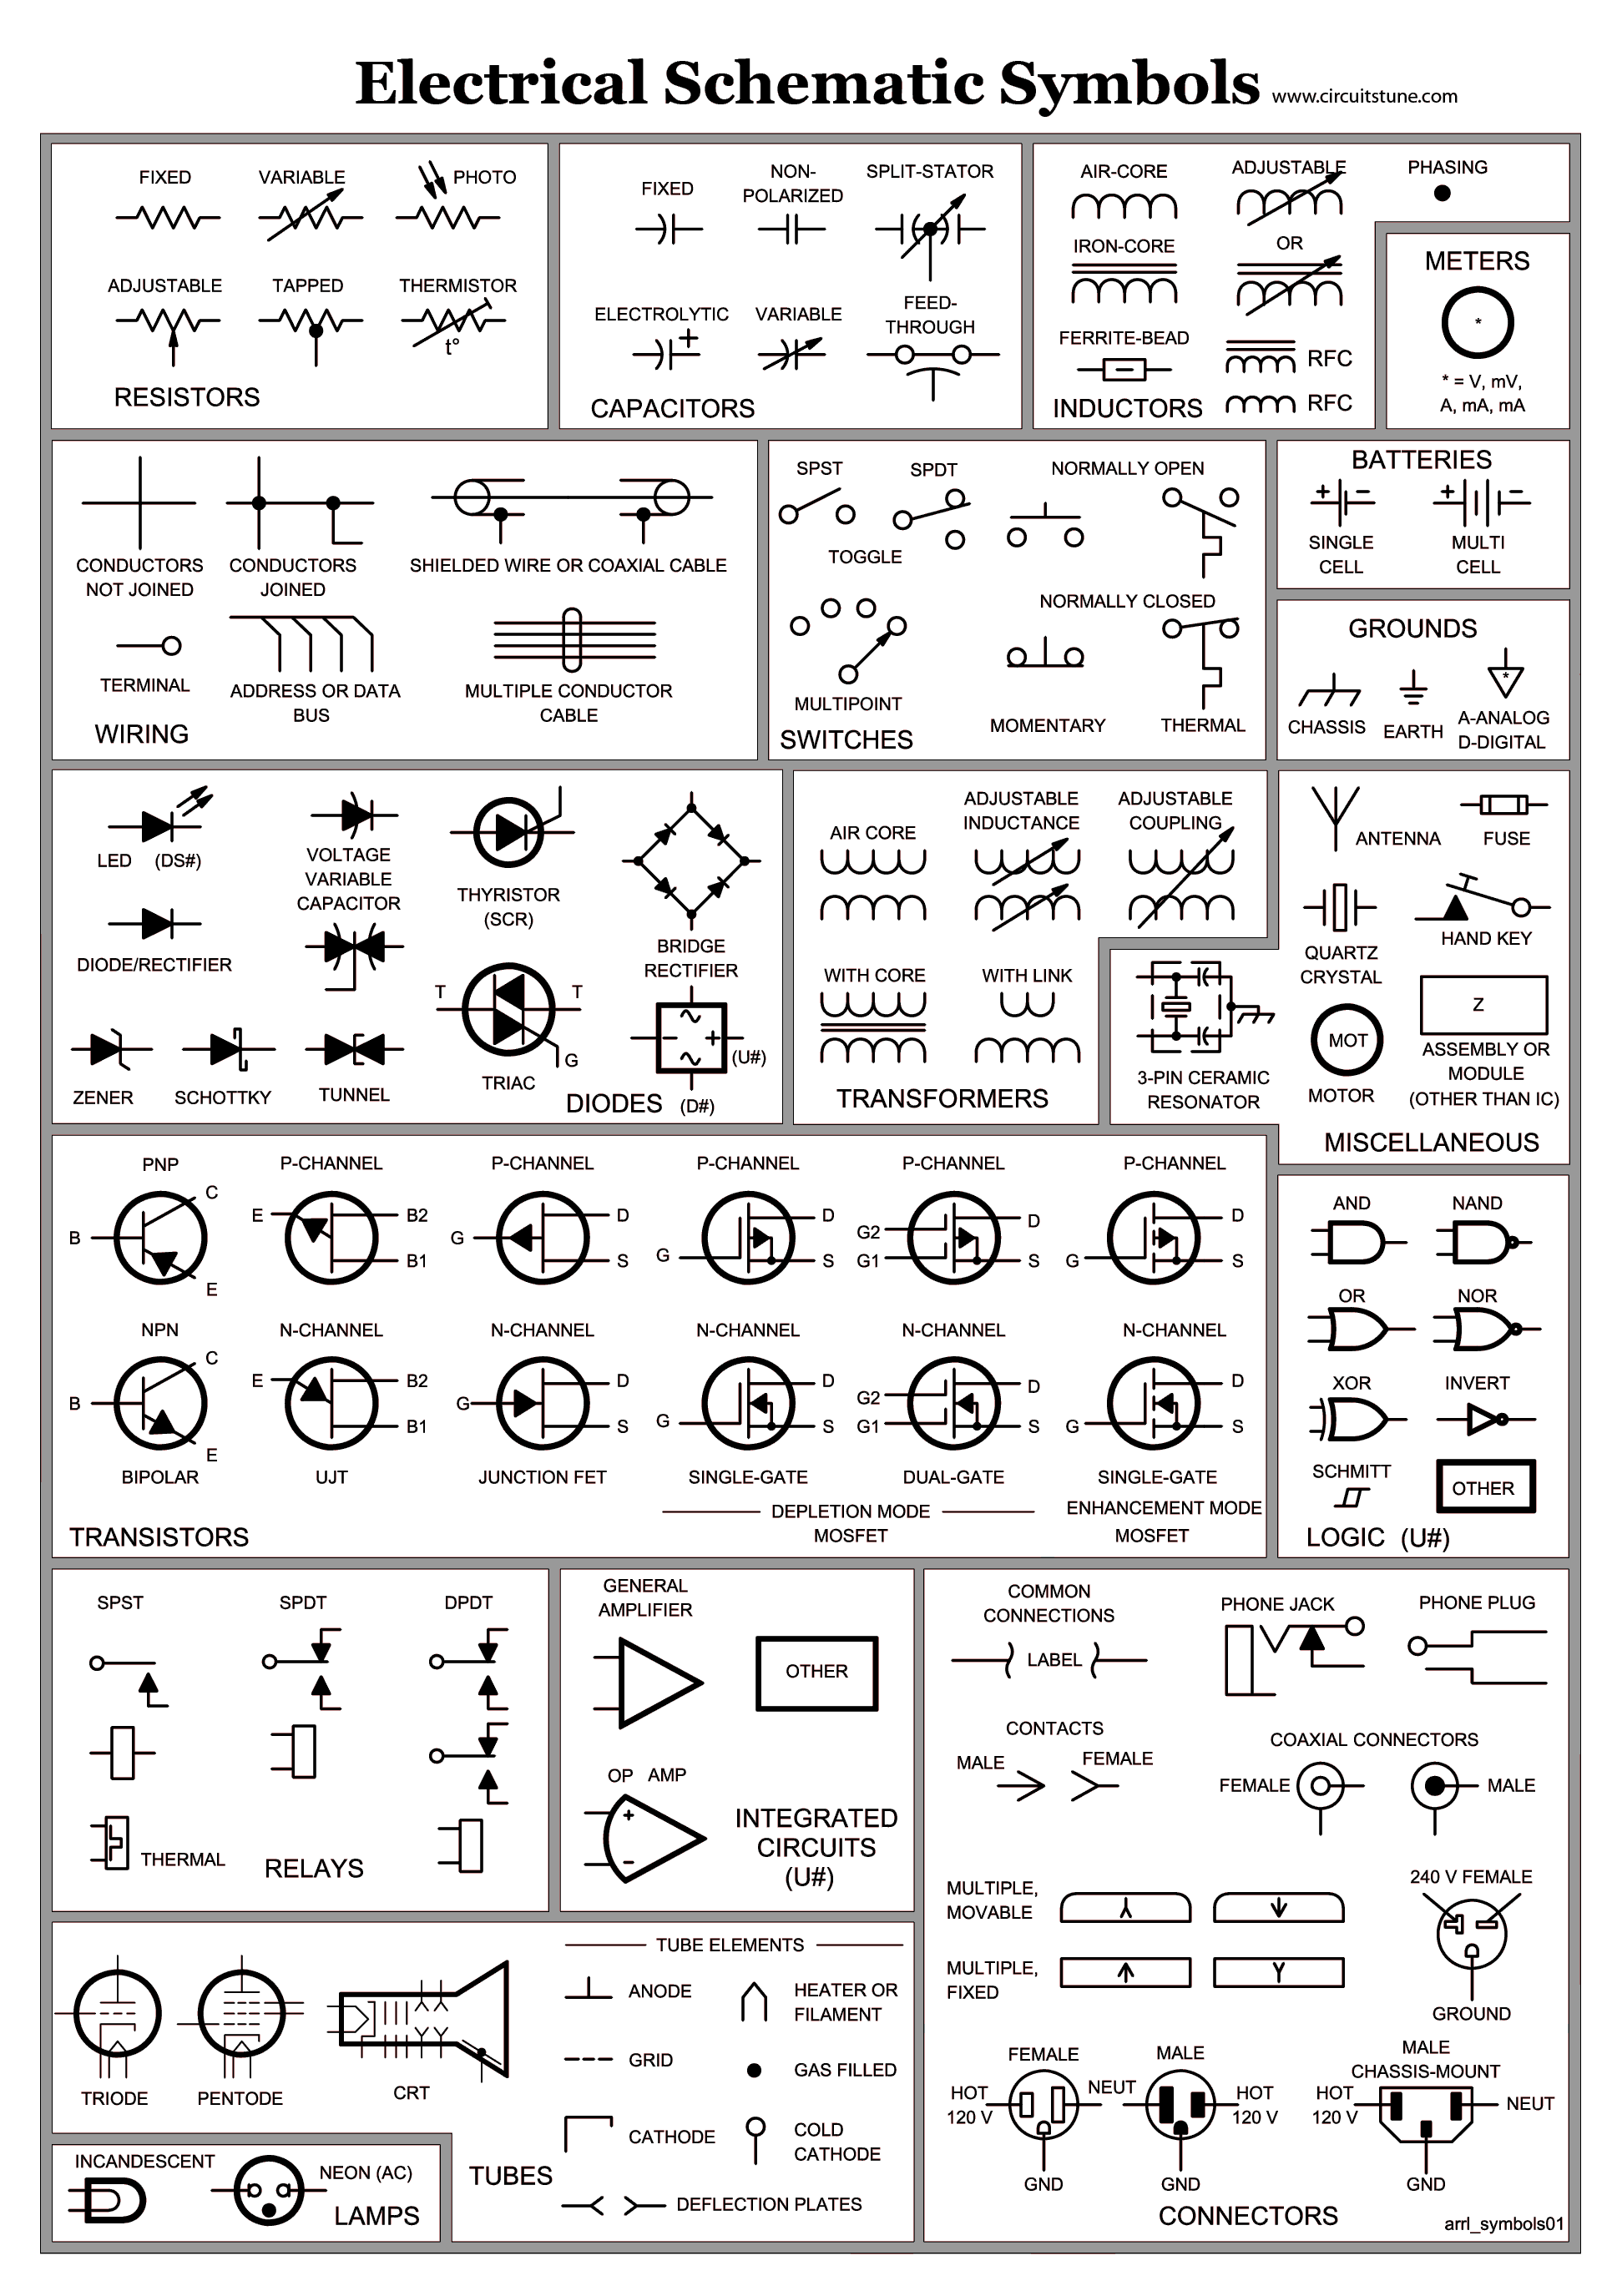 Wiring Diagram 12 Volt Sign Diagrams Outdoor 12v Guide Symbols Simple